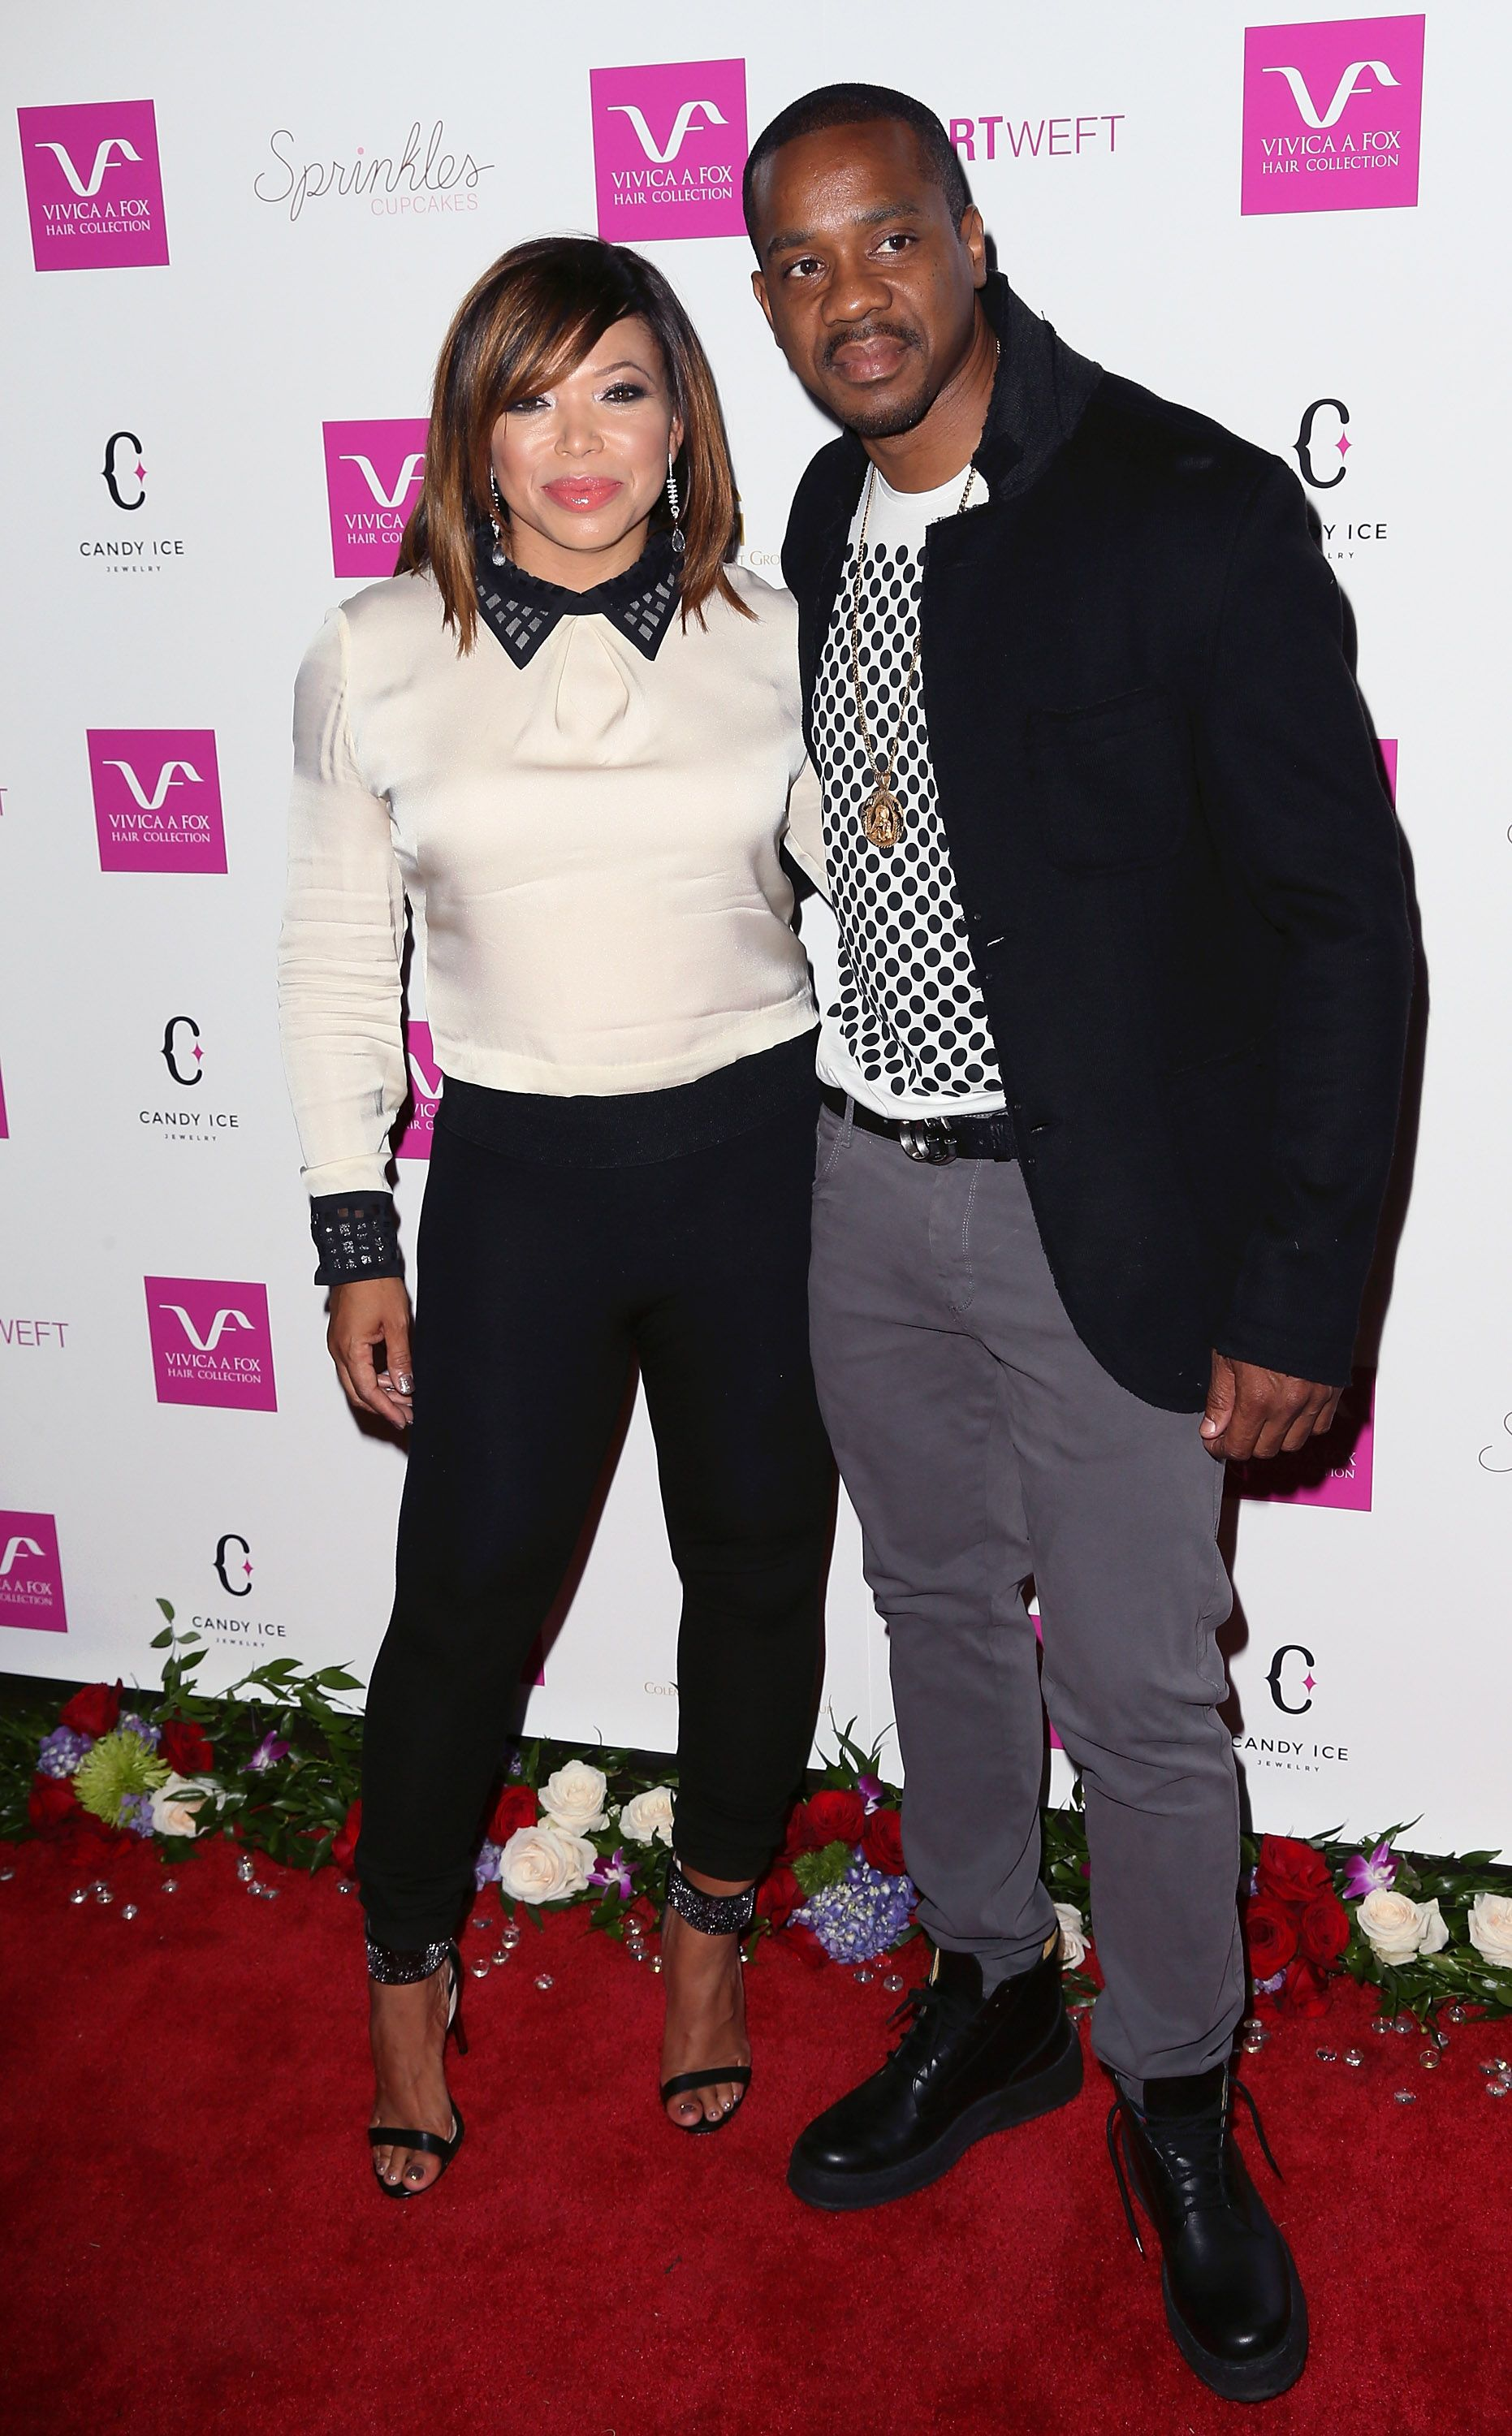 Tisha Campbell-Martin and Duane Martin at Vivica A. Fox's 50th birthday celebration at Philippe Chow on August 2, 2014.   Photo: Getty Images